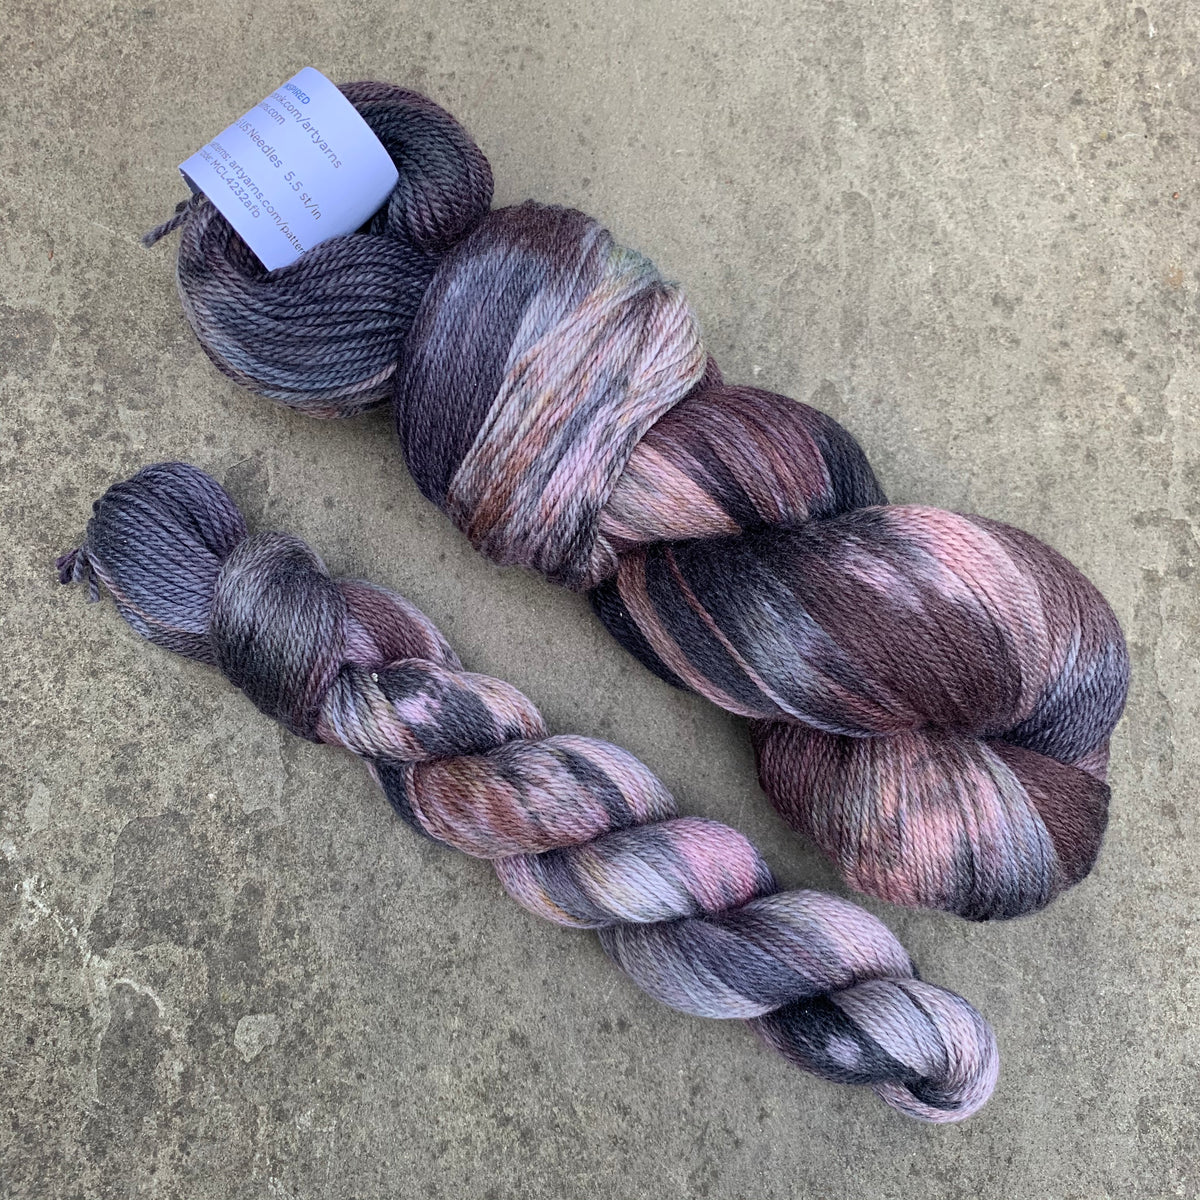 Artyarns Merino Cloud in Dark Calico 622